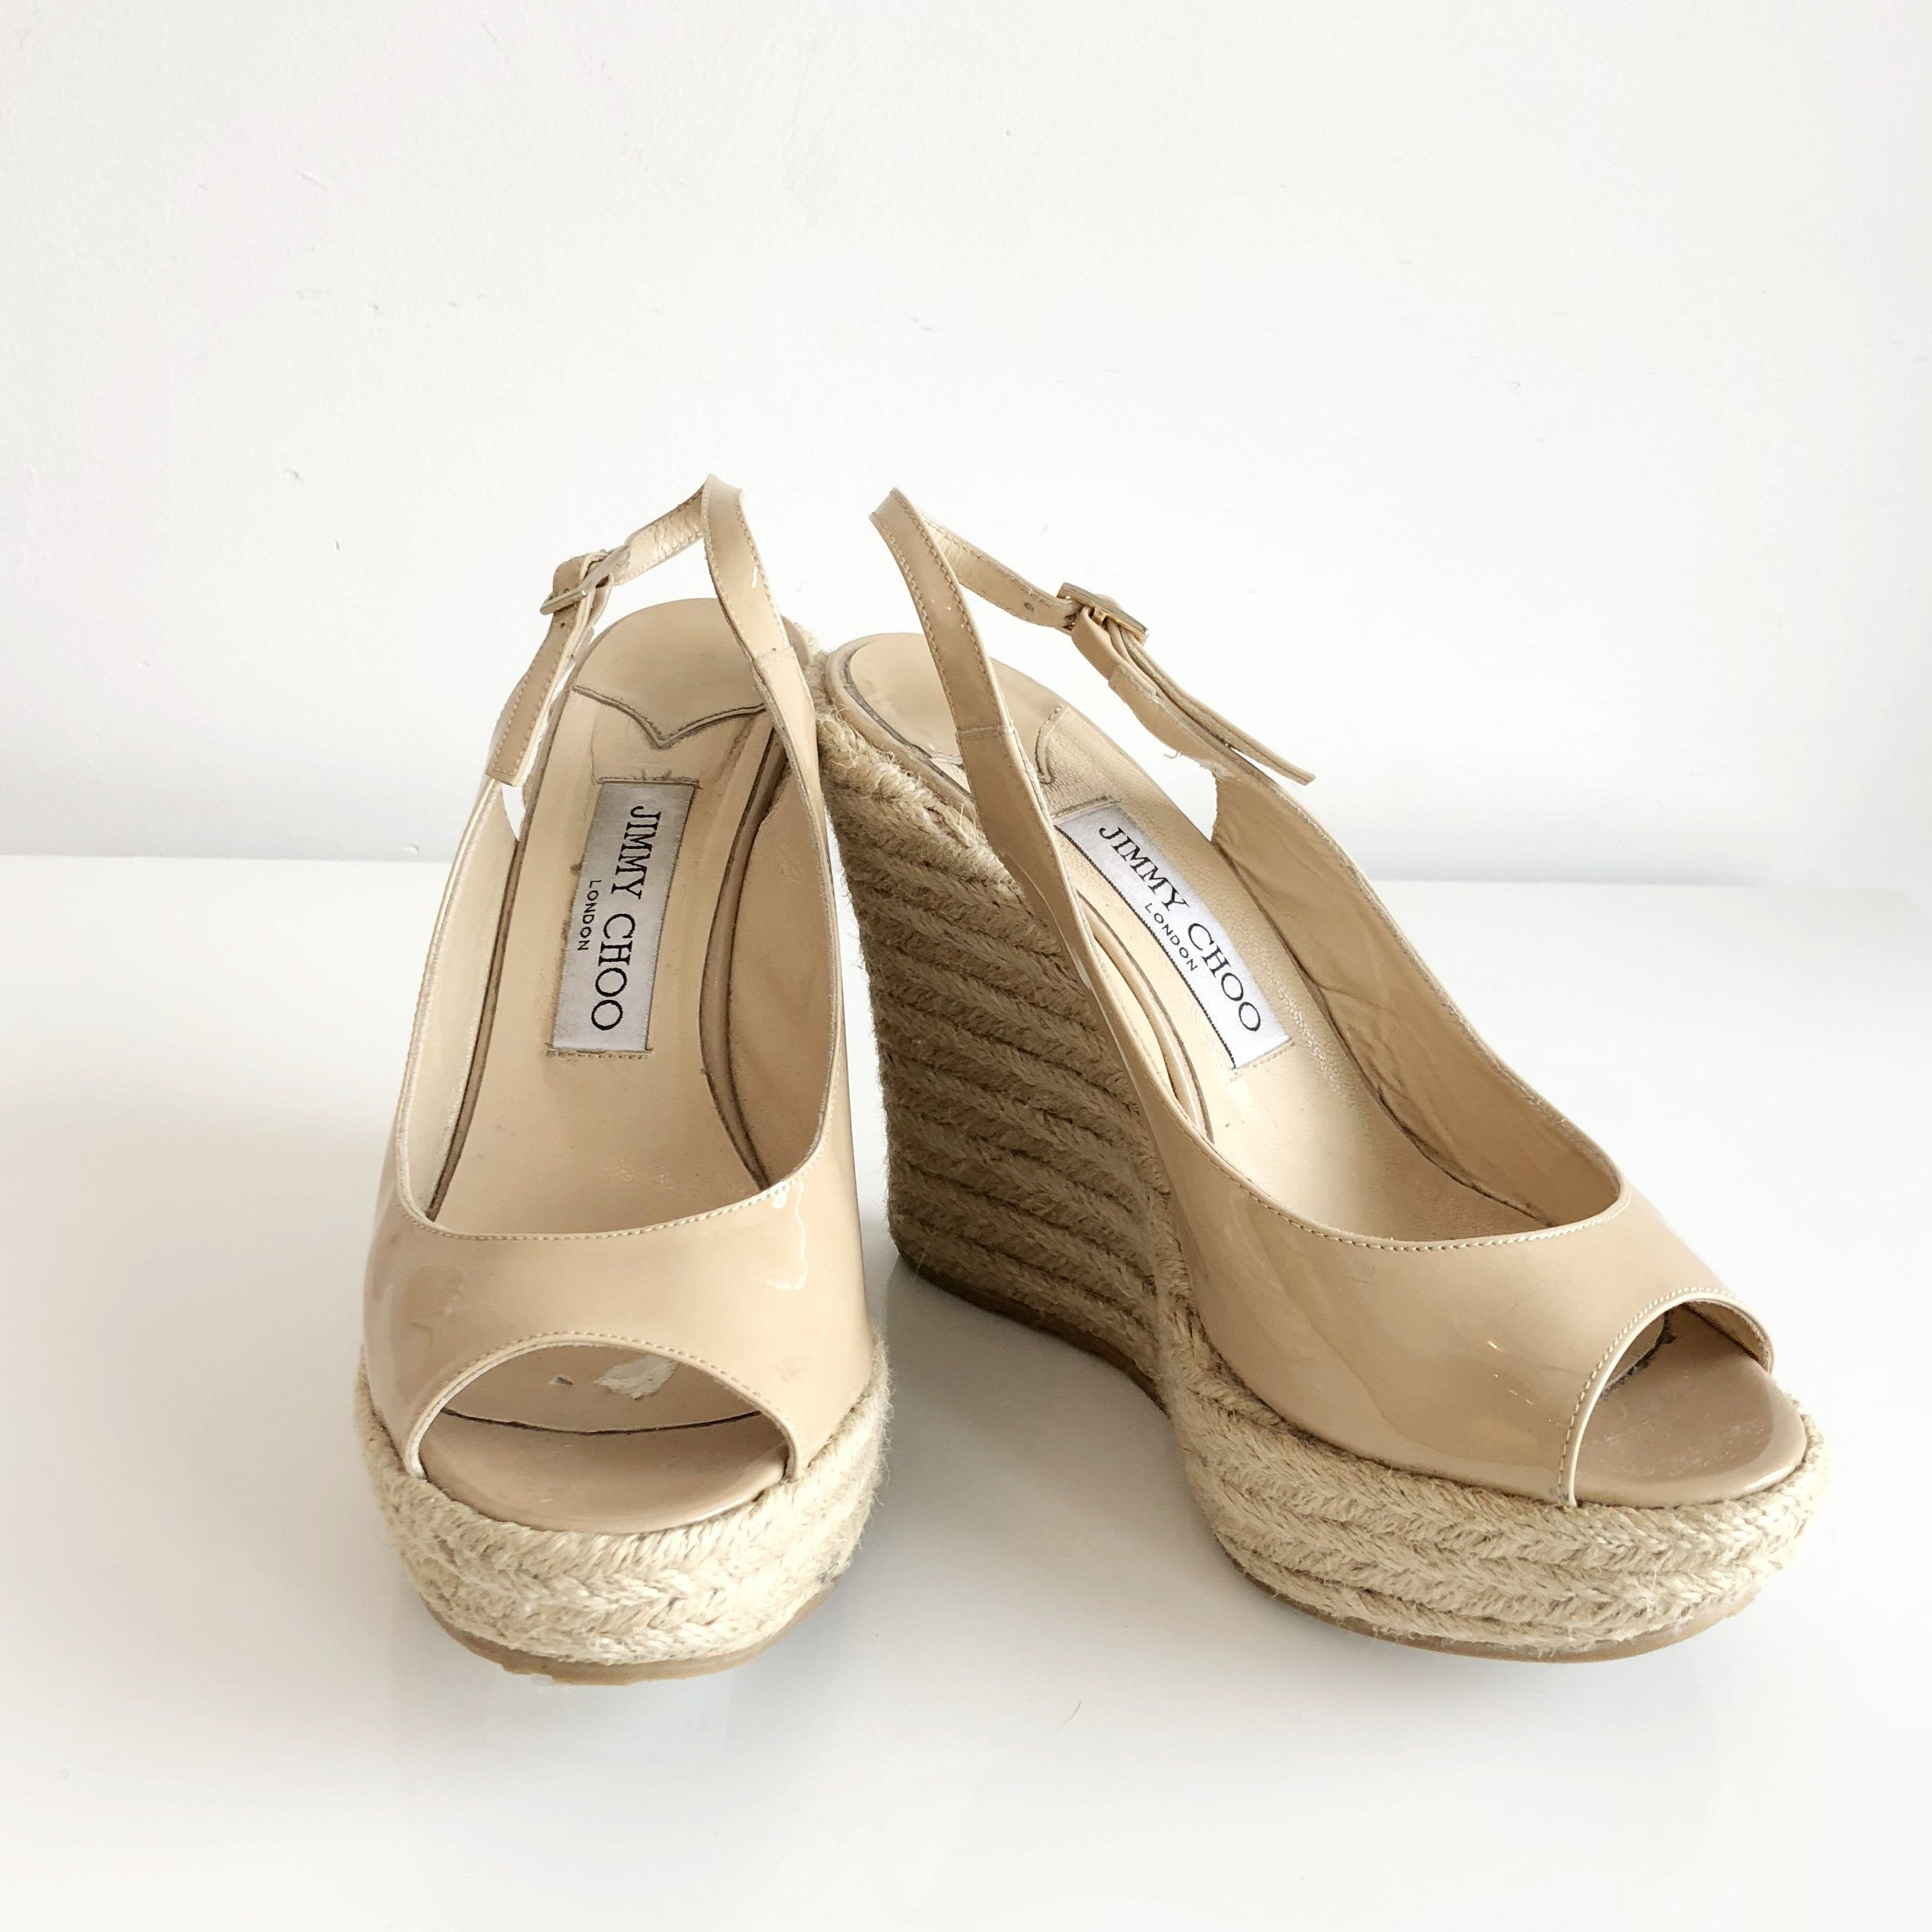 Authentic JIMMY CHOO Polar Espadrille Wedge Size 7.5